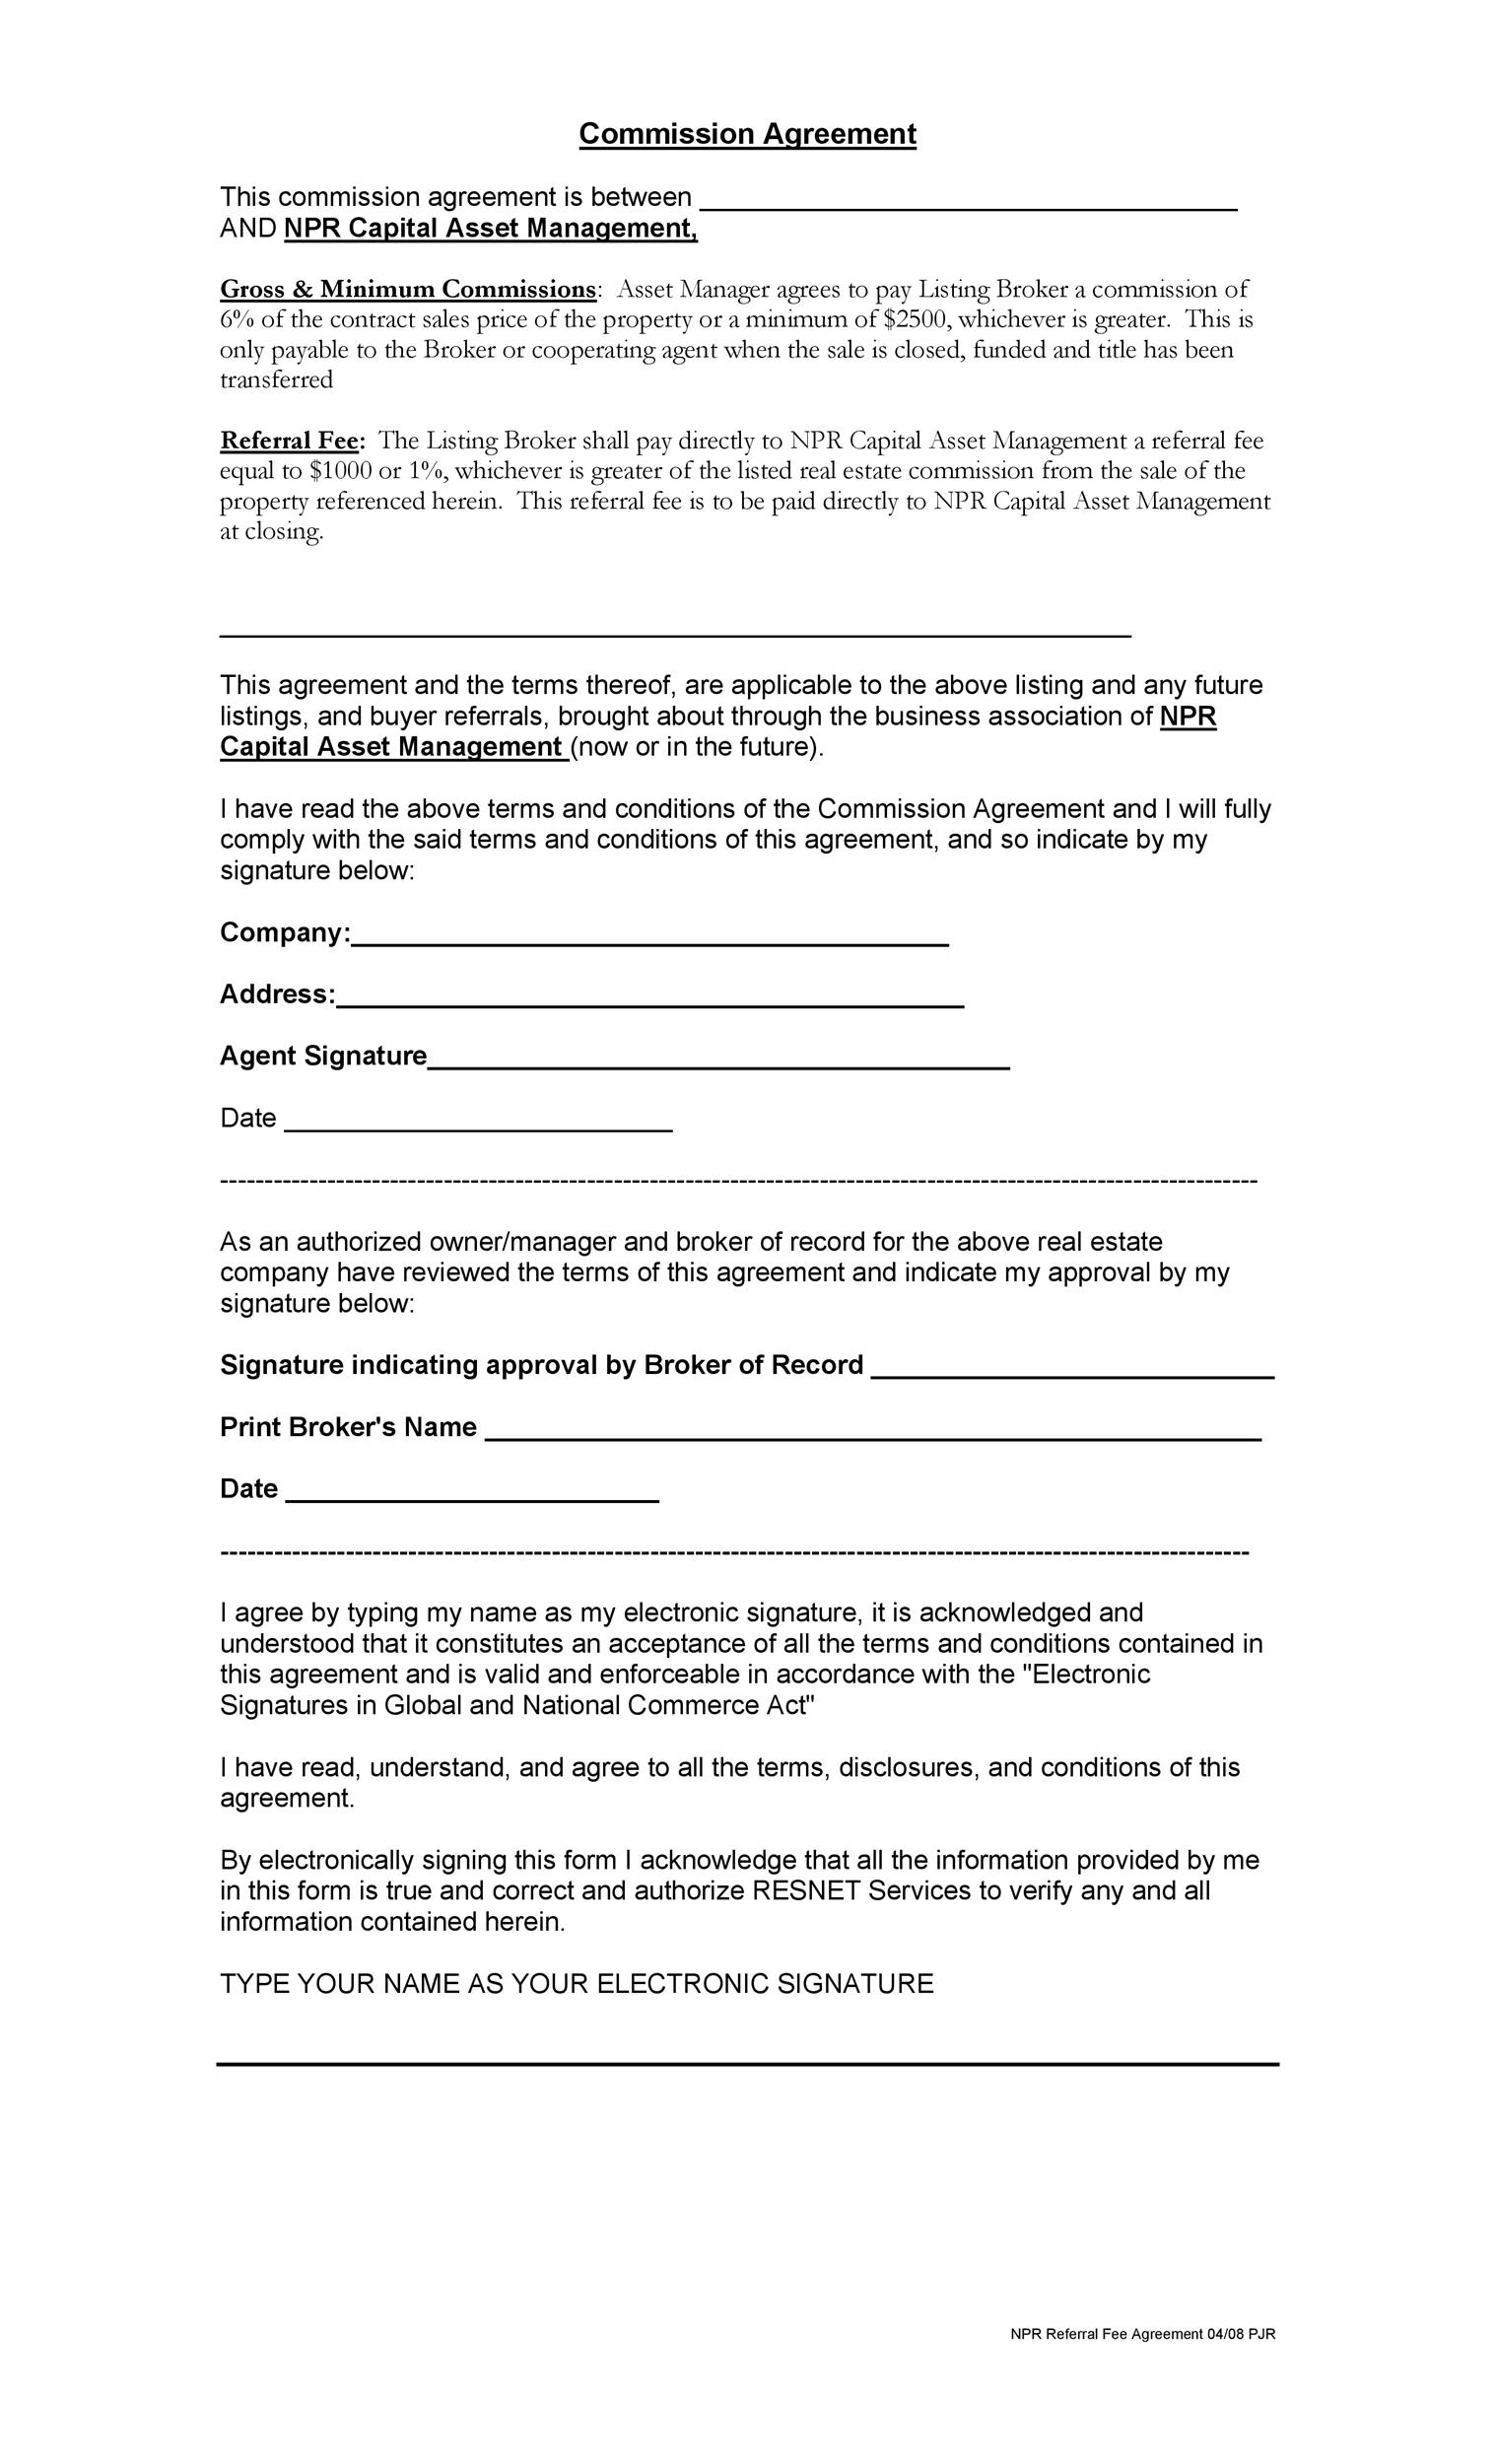 Free Commission Agreement Template 13